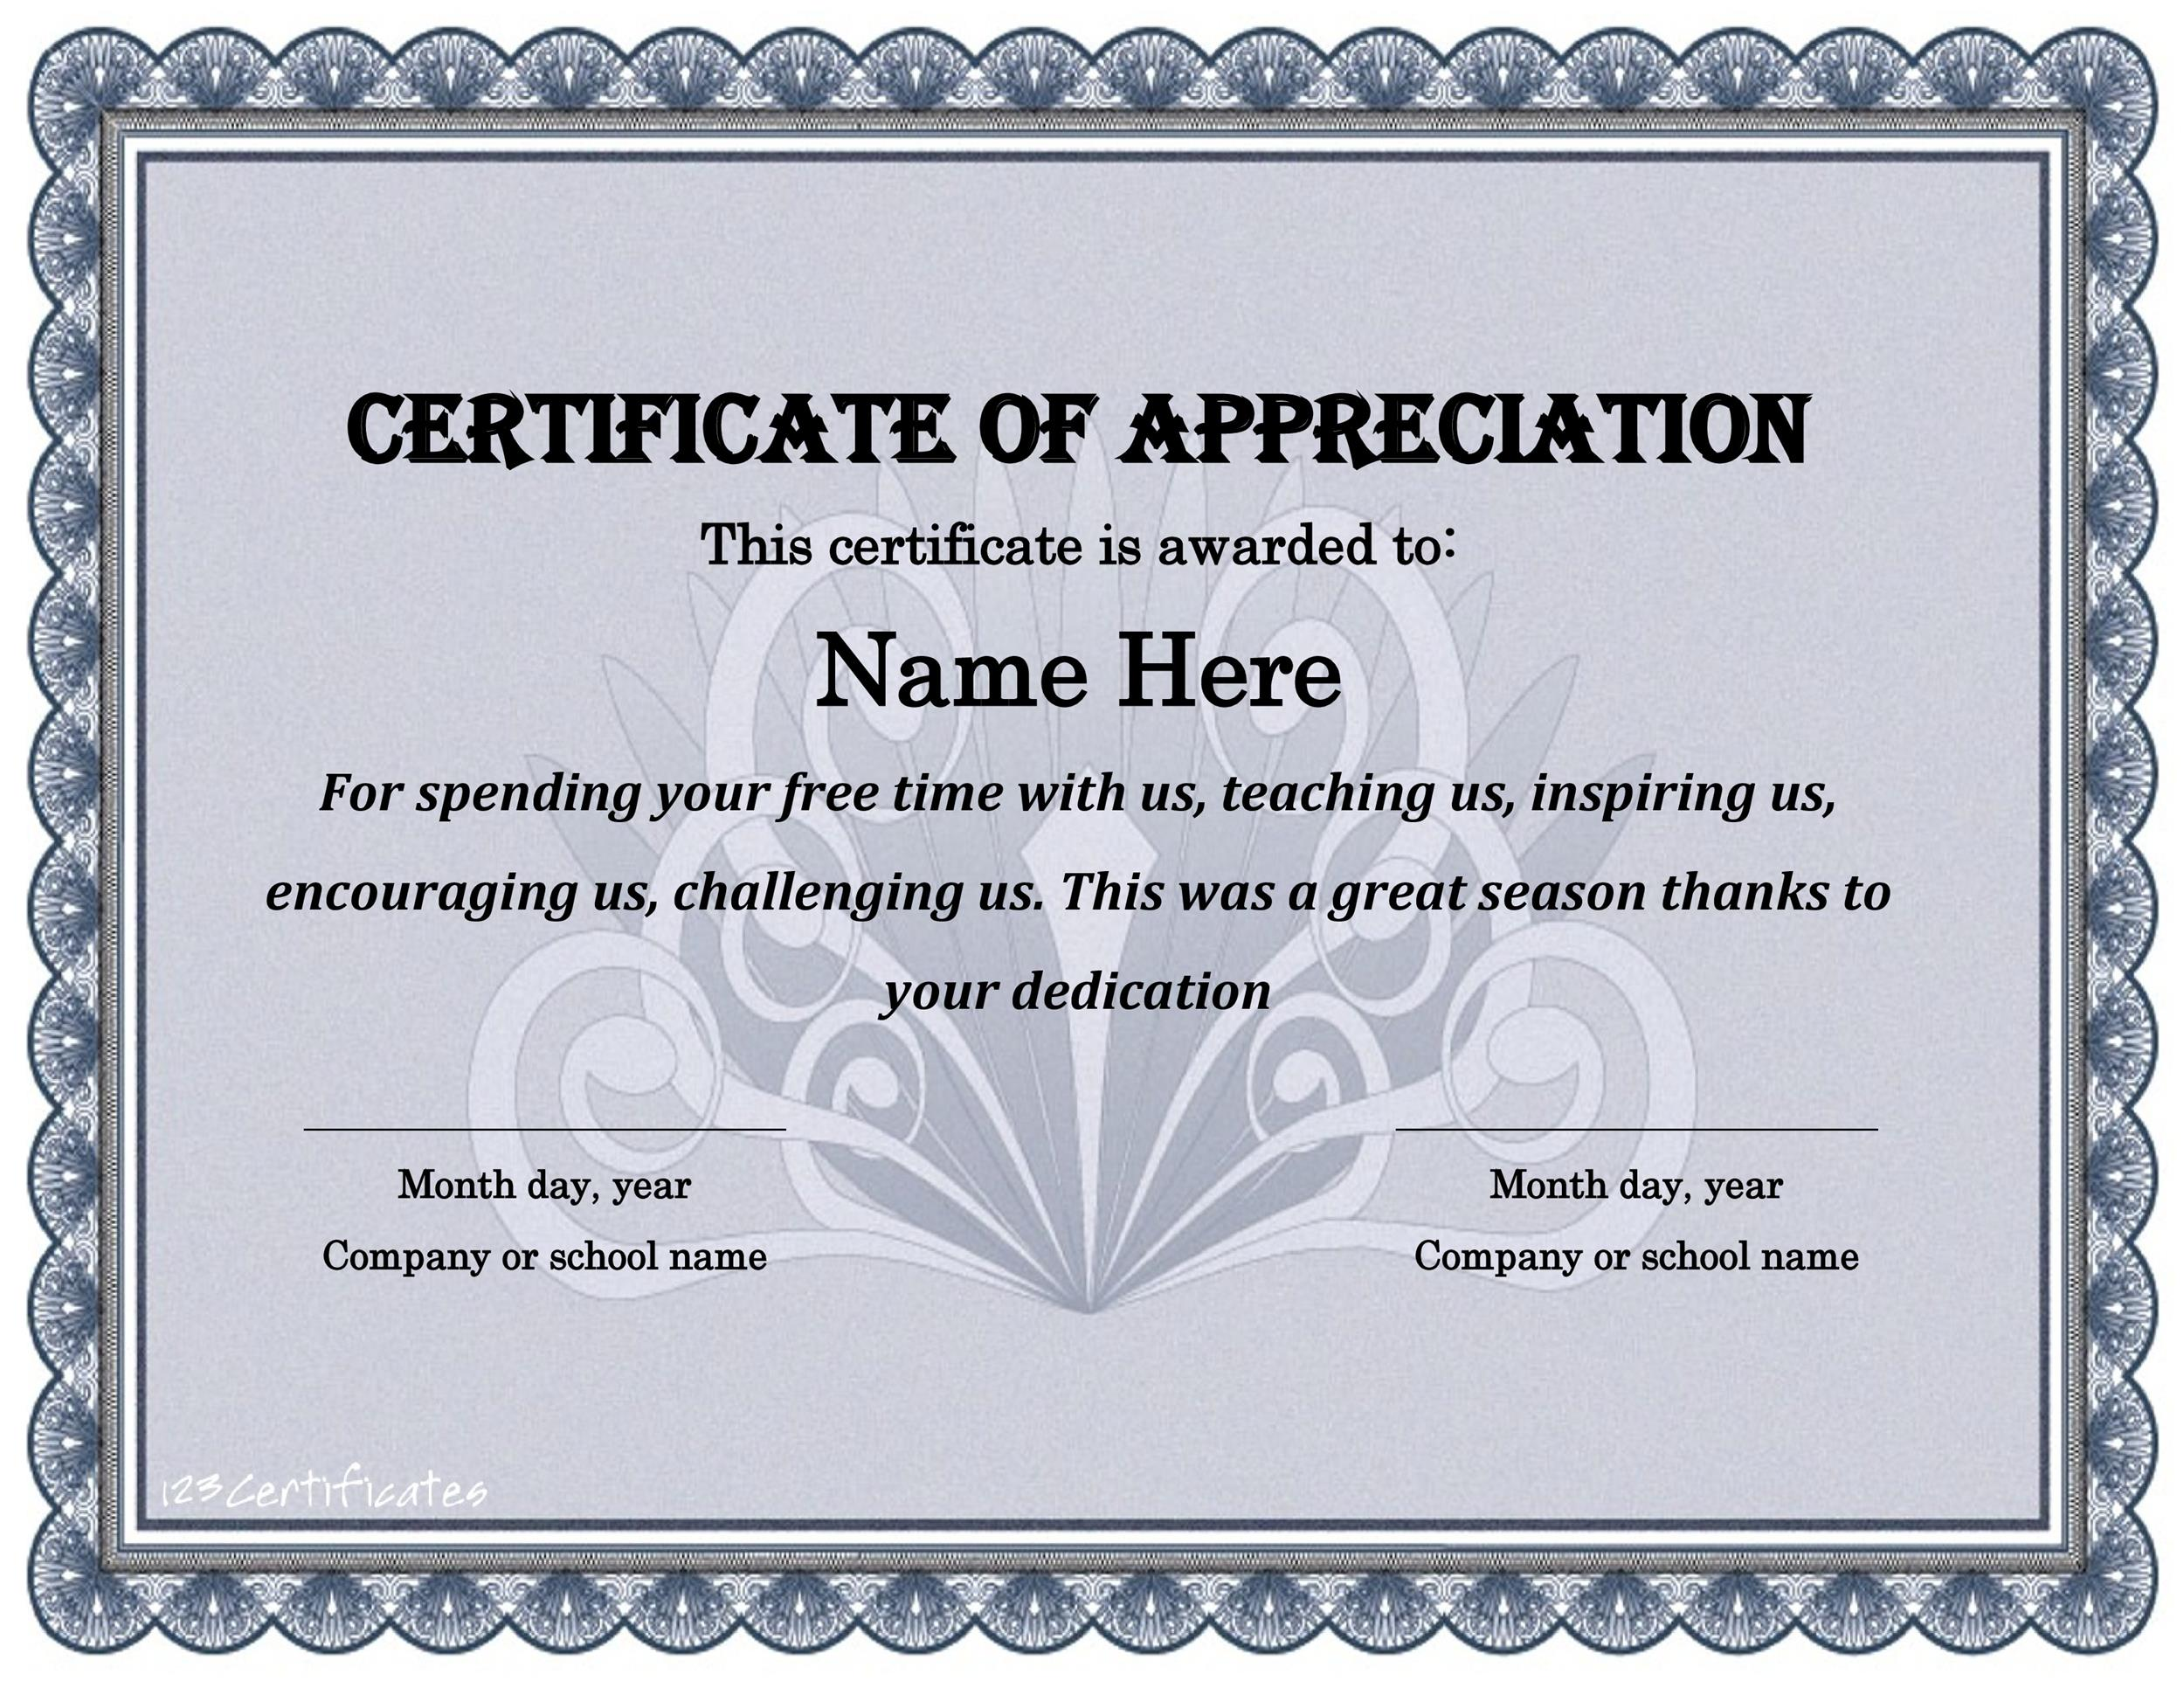 30 Free Certificate of Appreciation Templates and Letters - school certificate templates